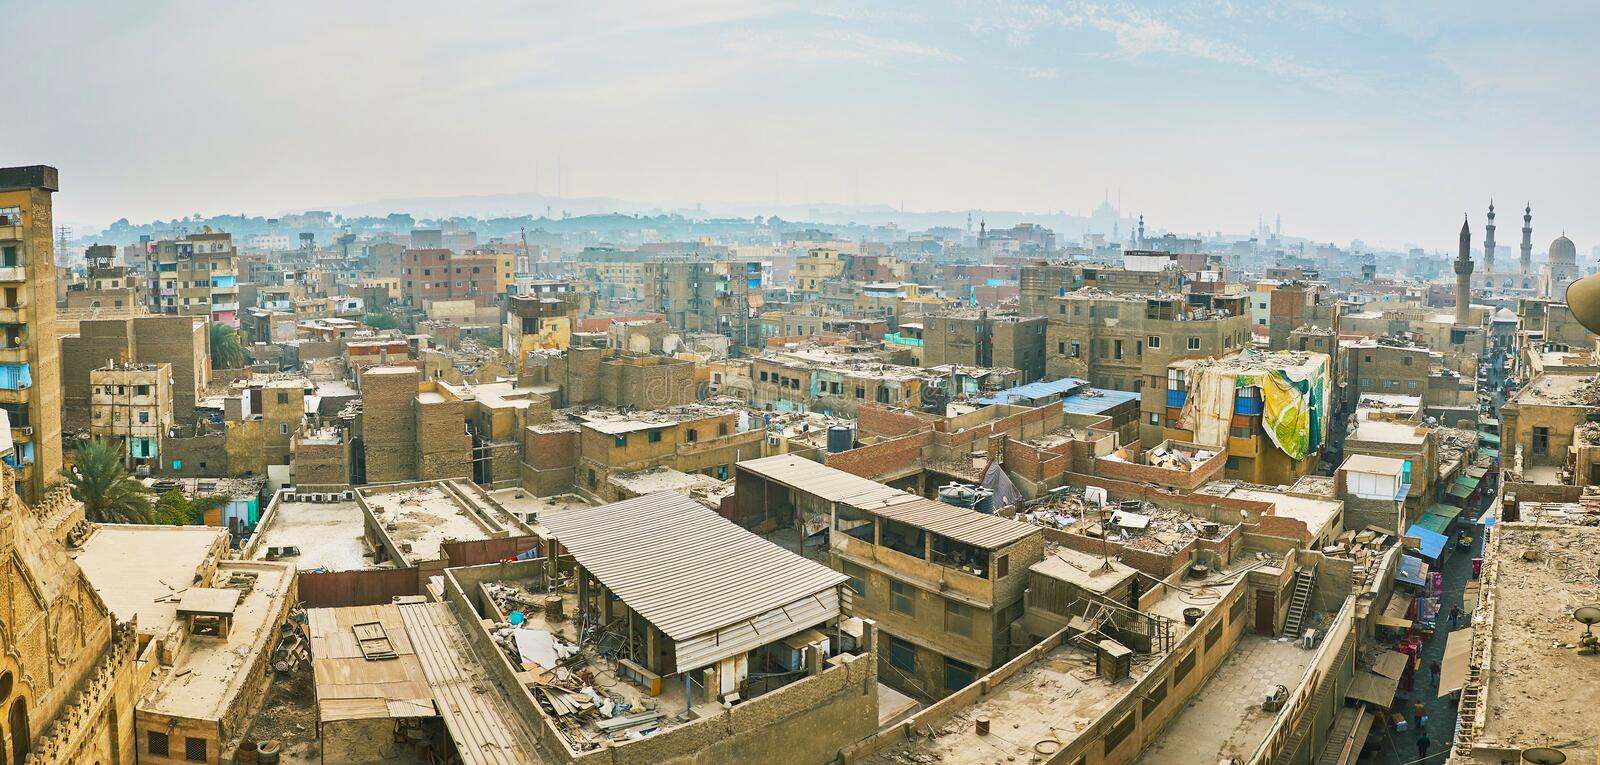 Overlook Islamic Cairo, Egypt. Panorama from the minaret of Al-Ghuri Mosque-Madrasa: the forest of old slums, covered with dust and the medieval minarets, rising royalty free stock images